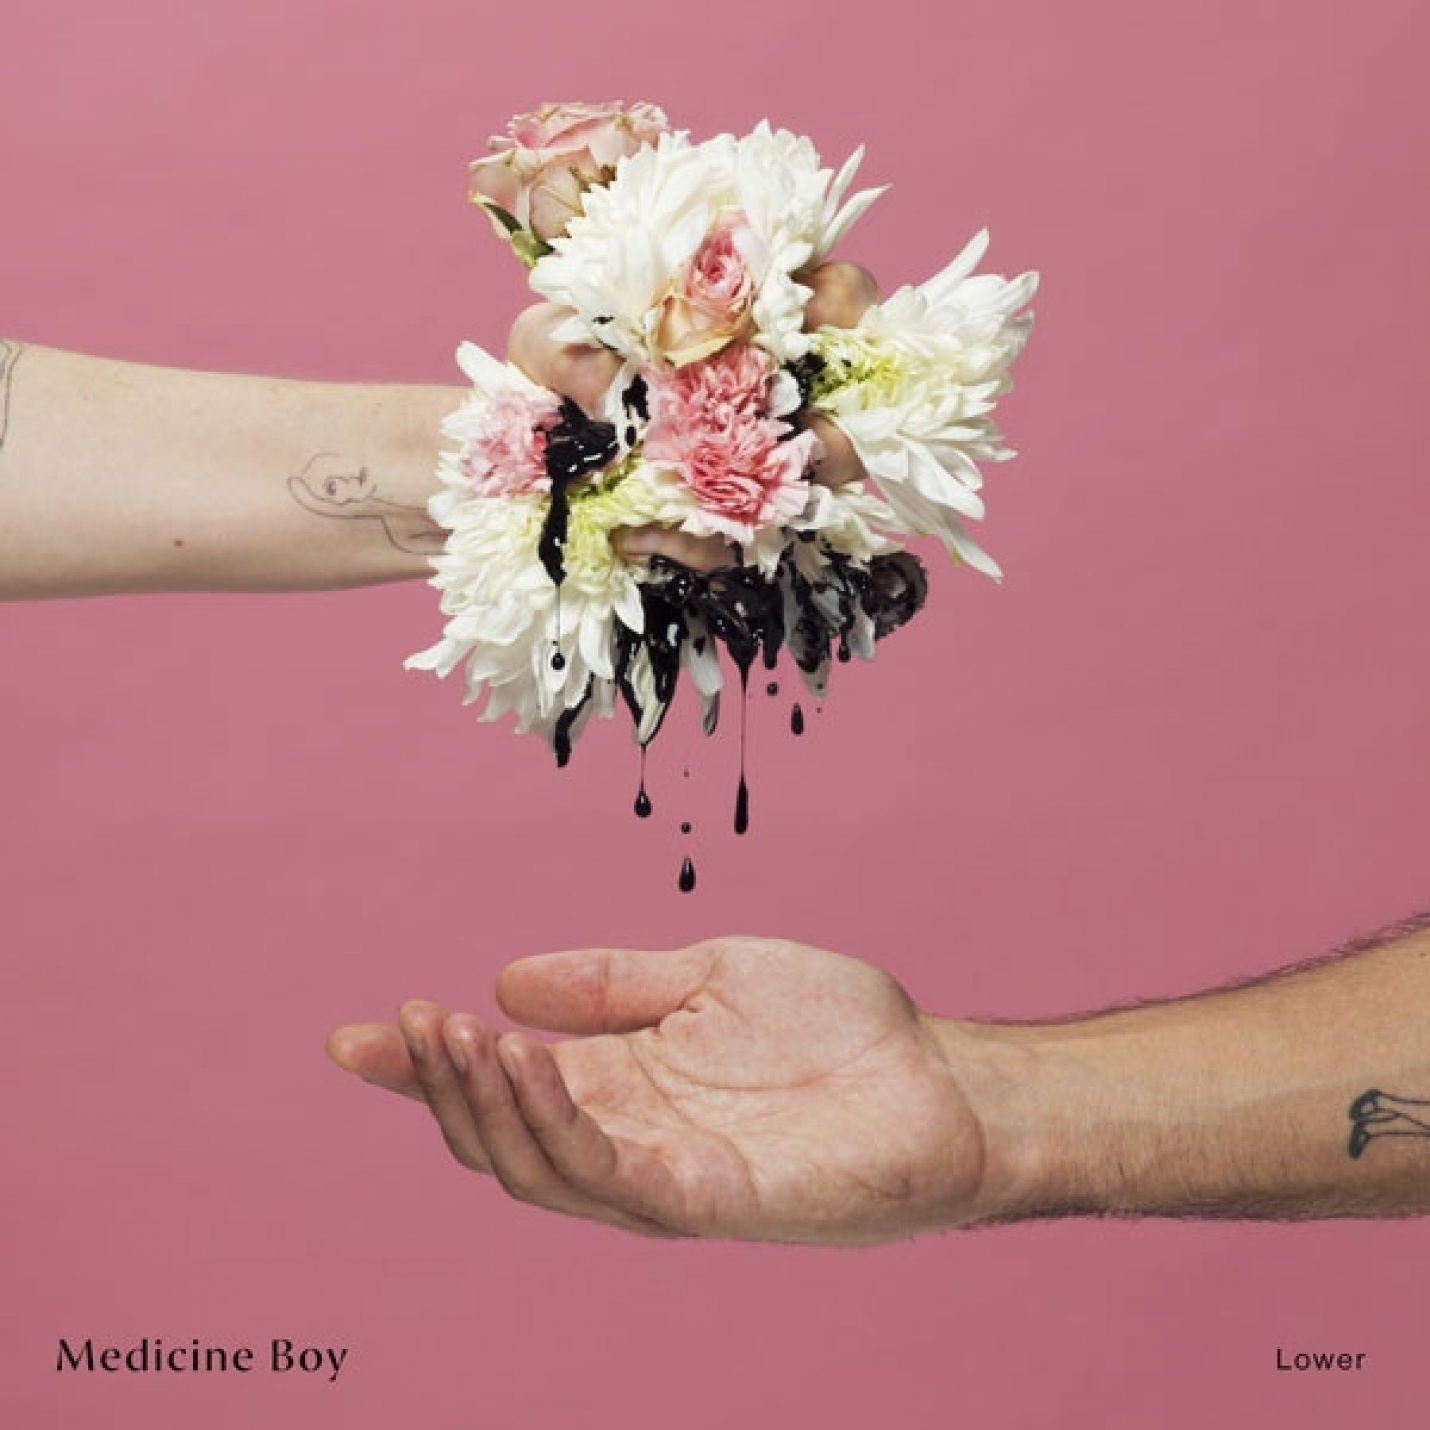 Medicine Boy - 'Lower'